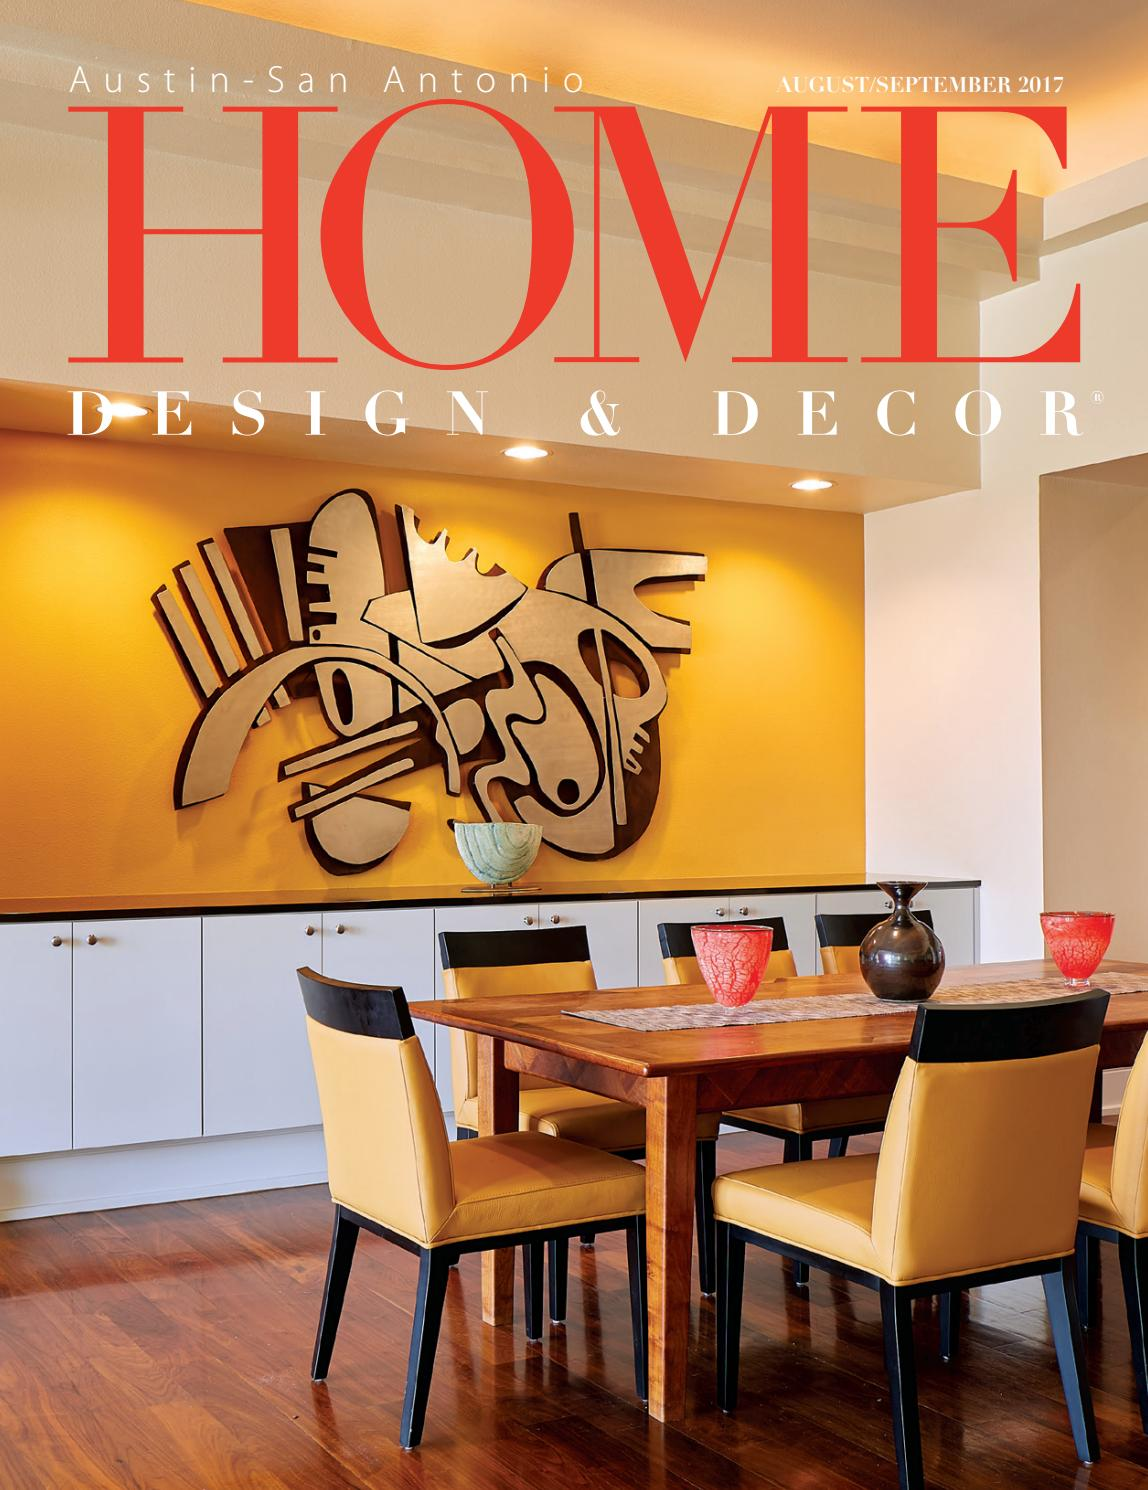 Home Design Decor Austin San Antonio August Septemeber 2017 By Trisha Doucette Issuu